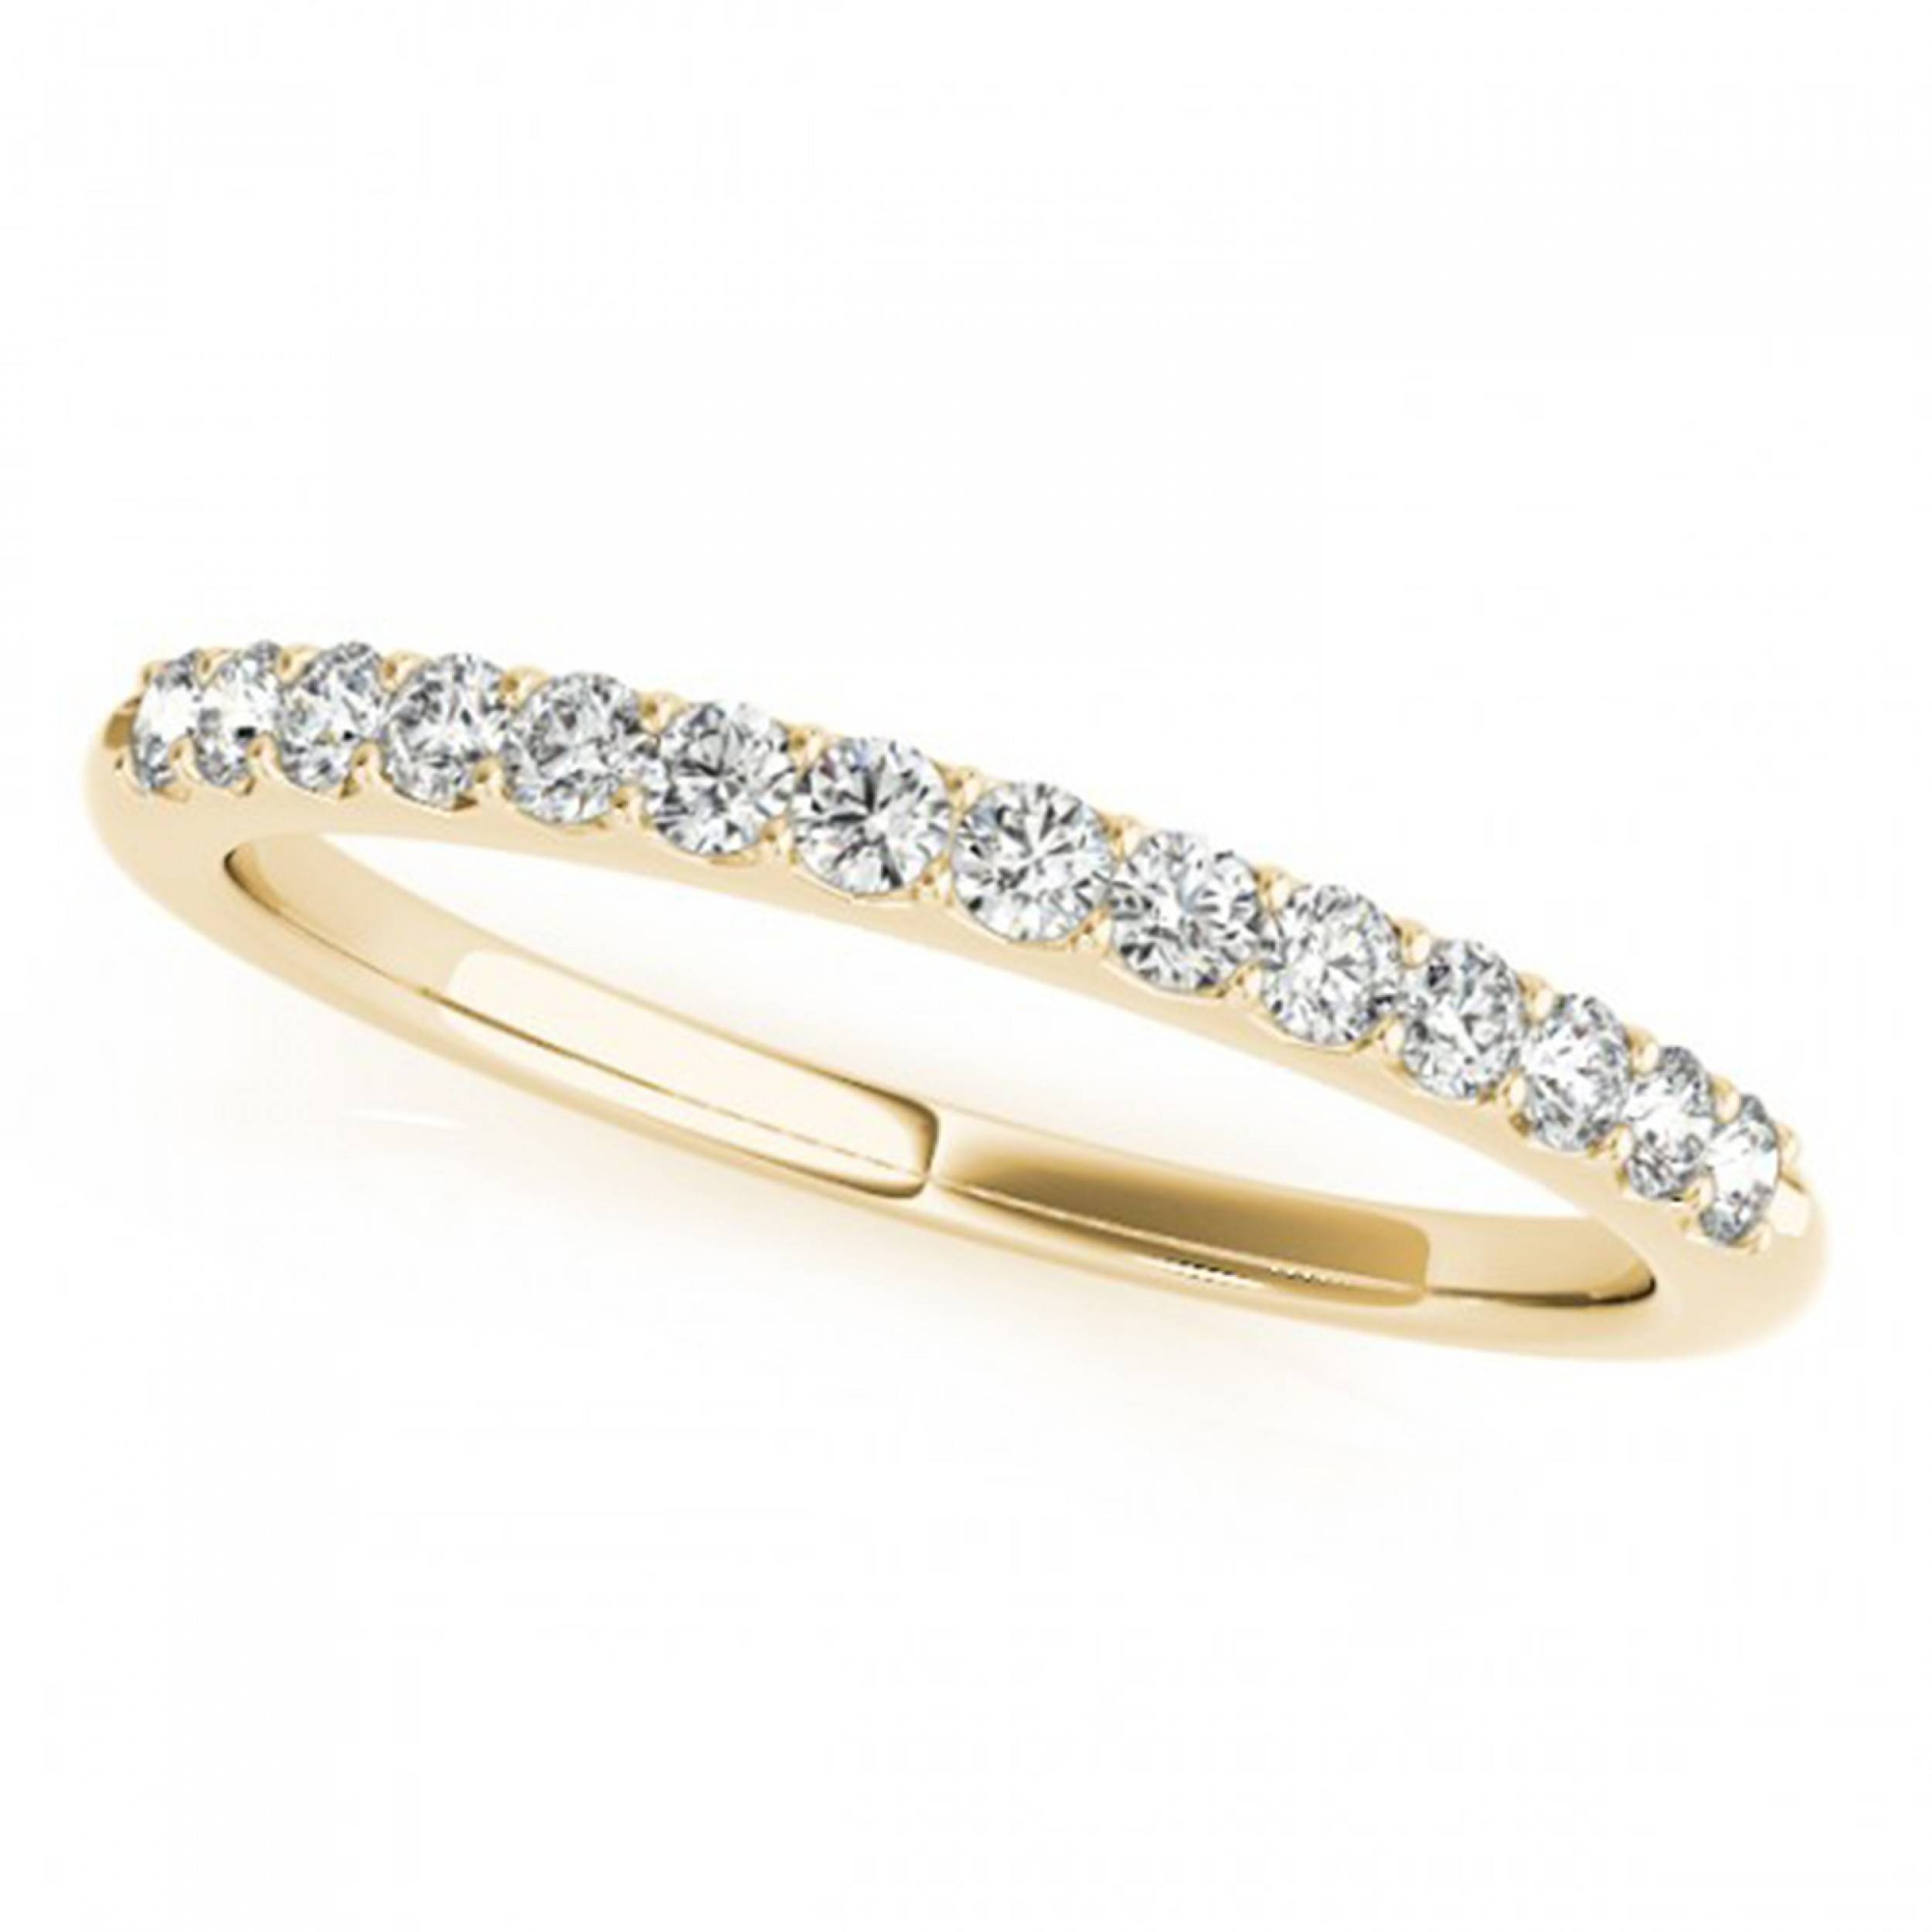 Yellow Gold Petite Pave Diamond Wedding Band In Pave Diamond Wedding Rings (View 10 of 15)